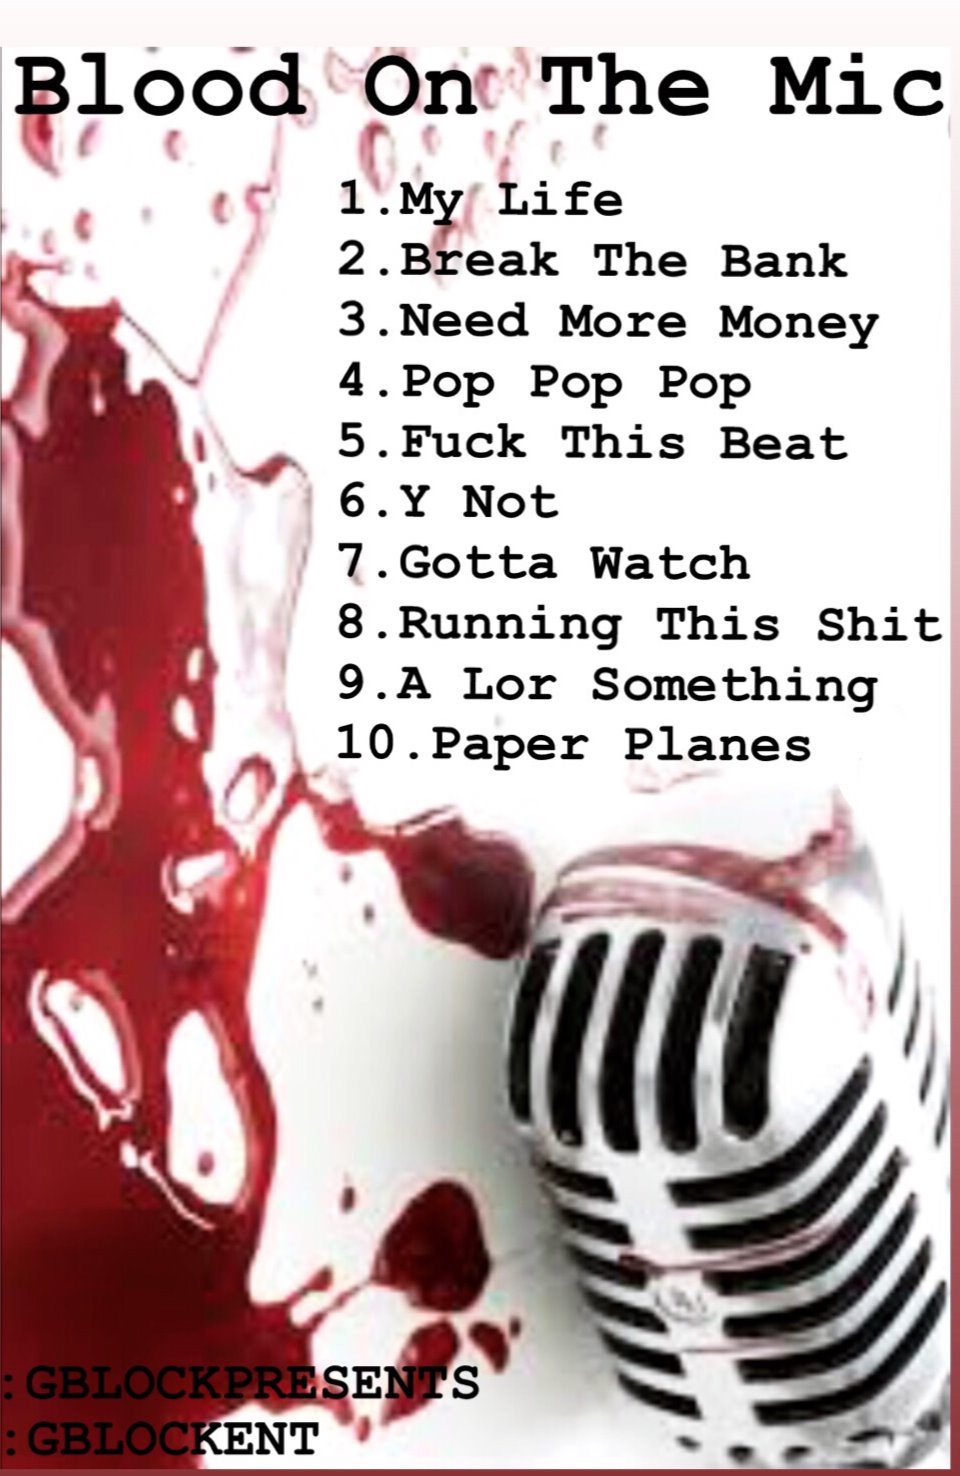 blood on the mic track_edited